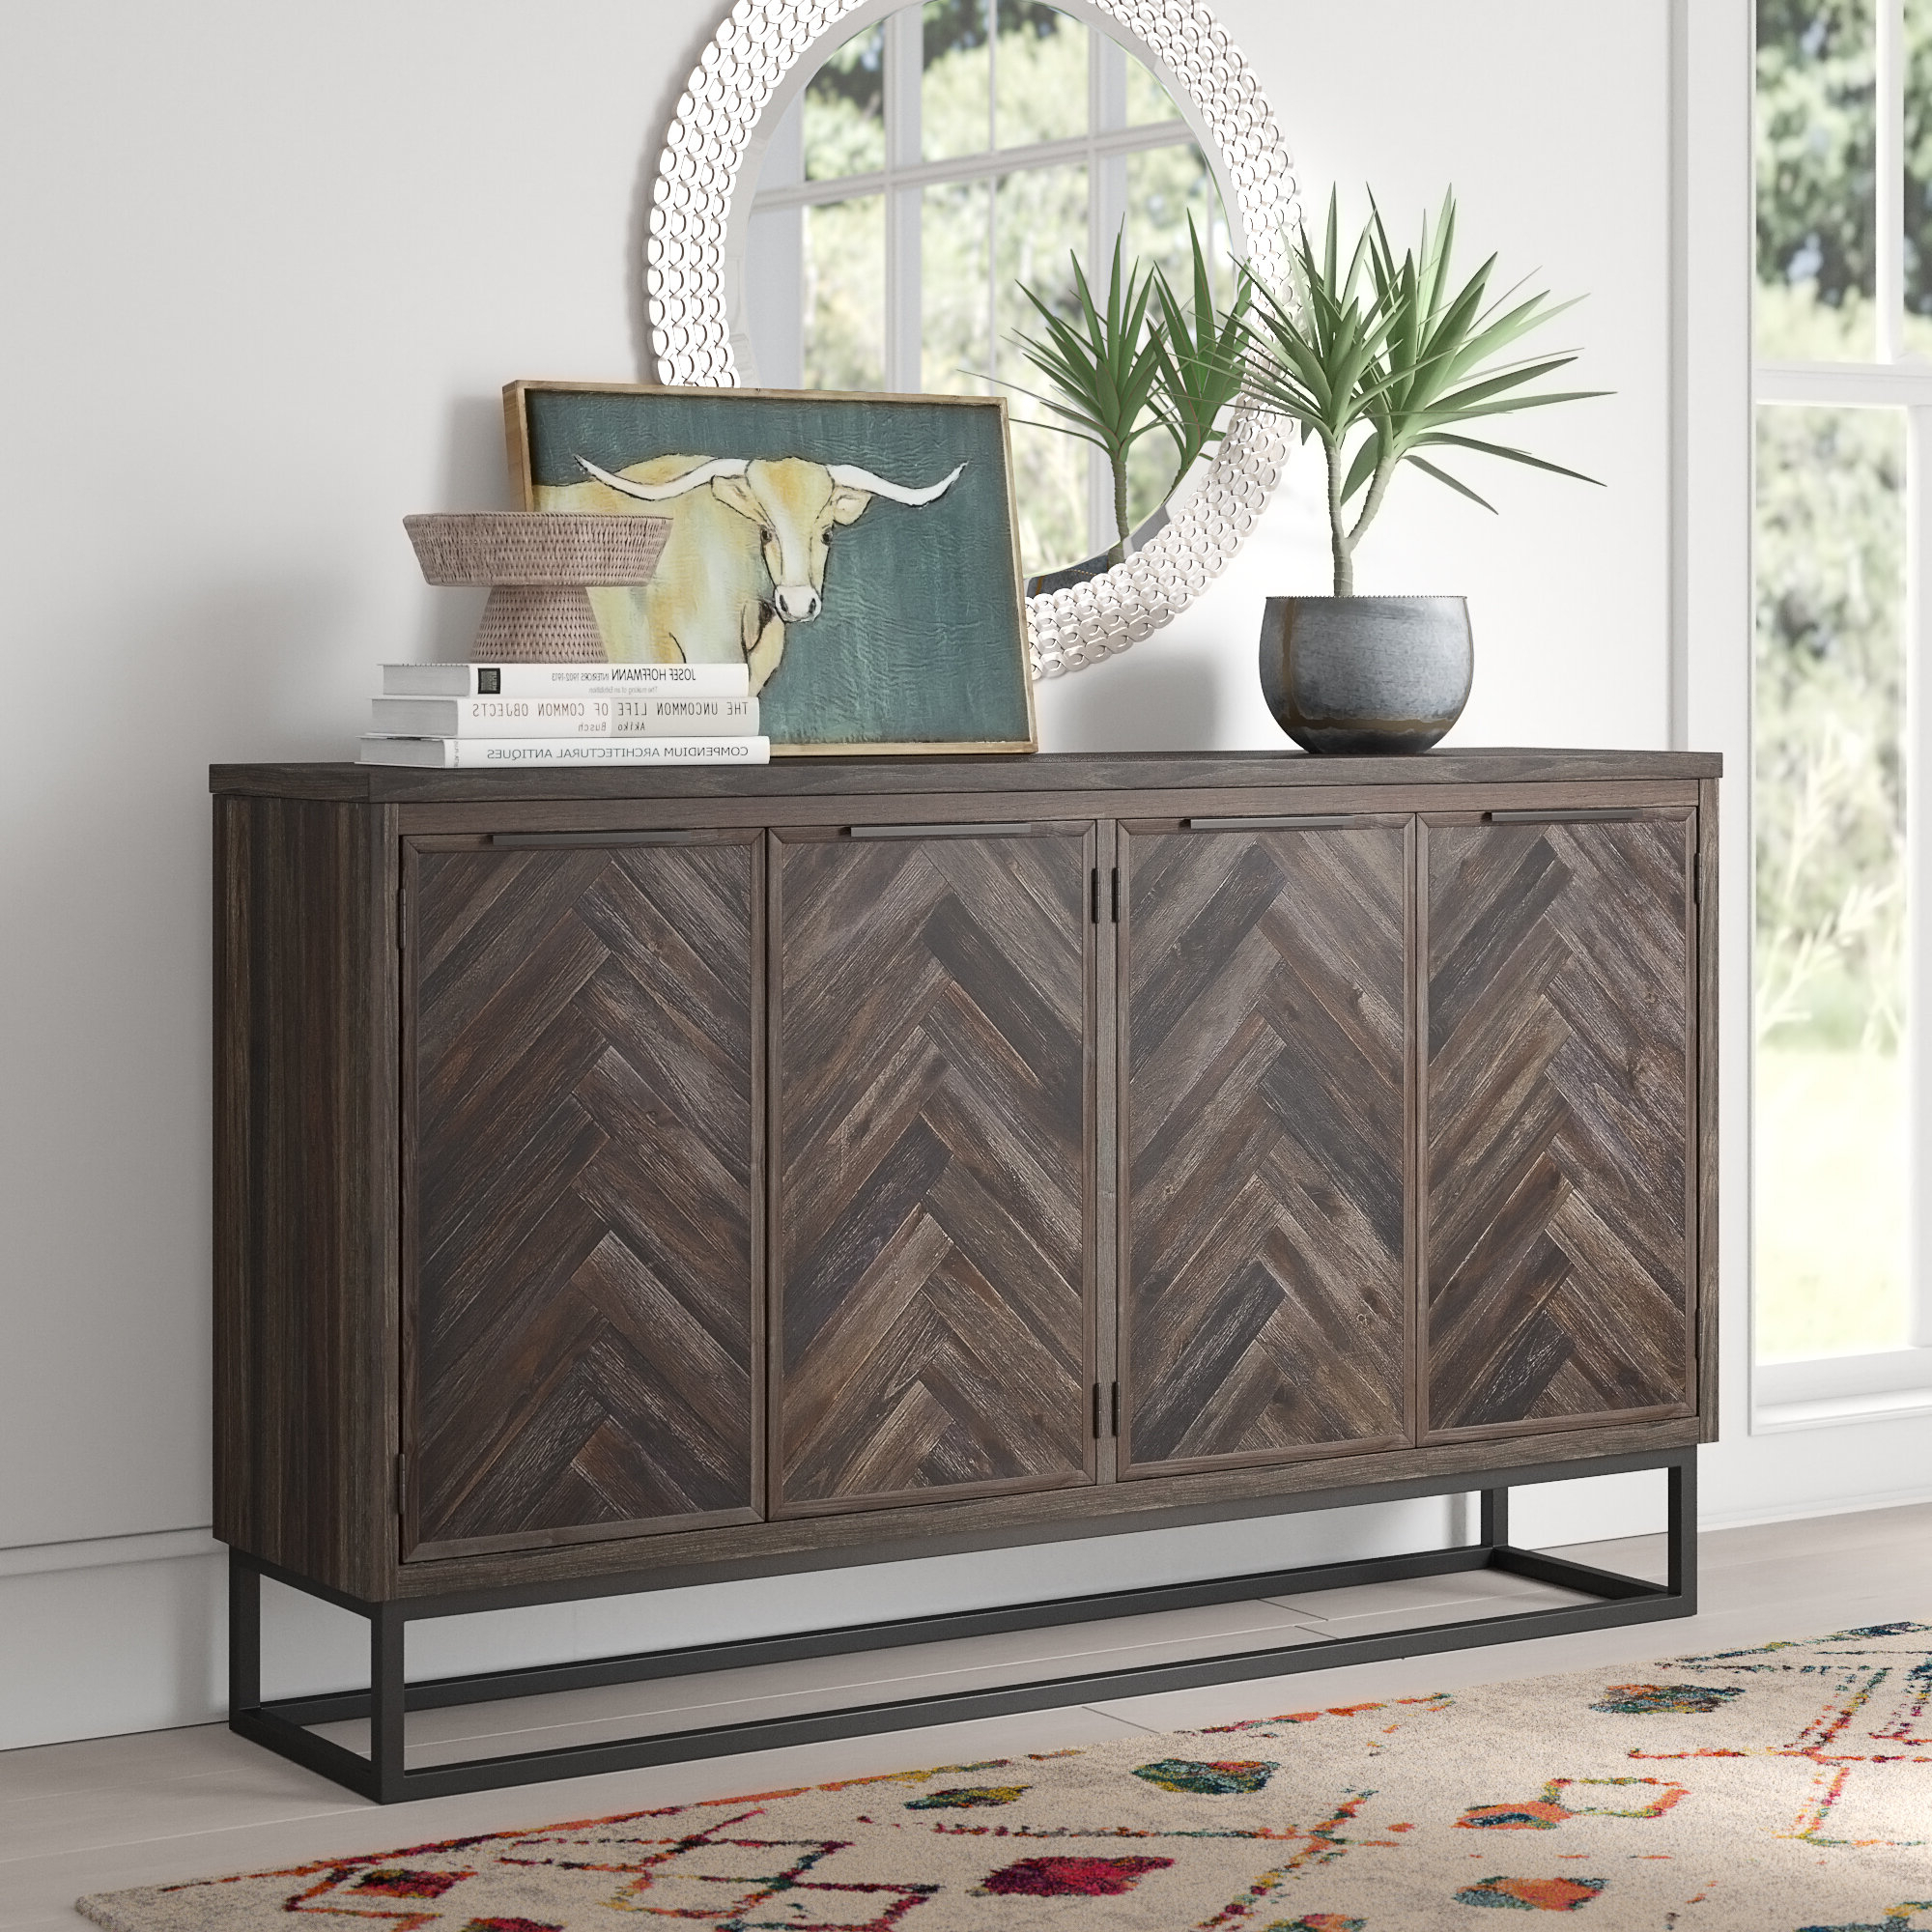 Wrought Iron Credenza | Wayfair With Regard To Upper Stanton Sideboards (View 17 of 20)